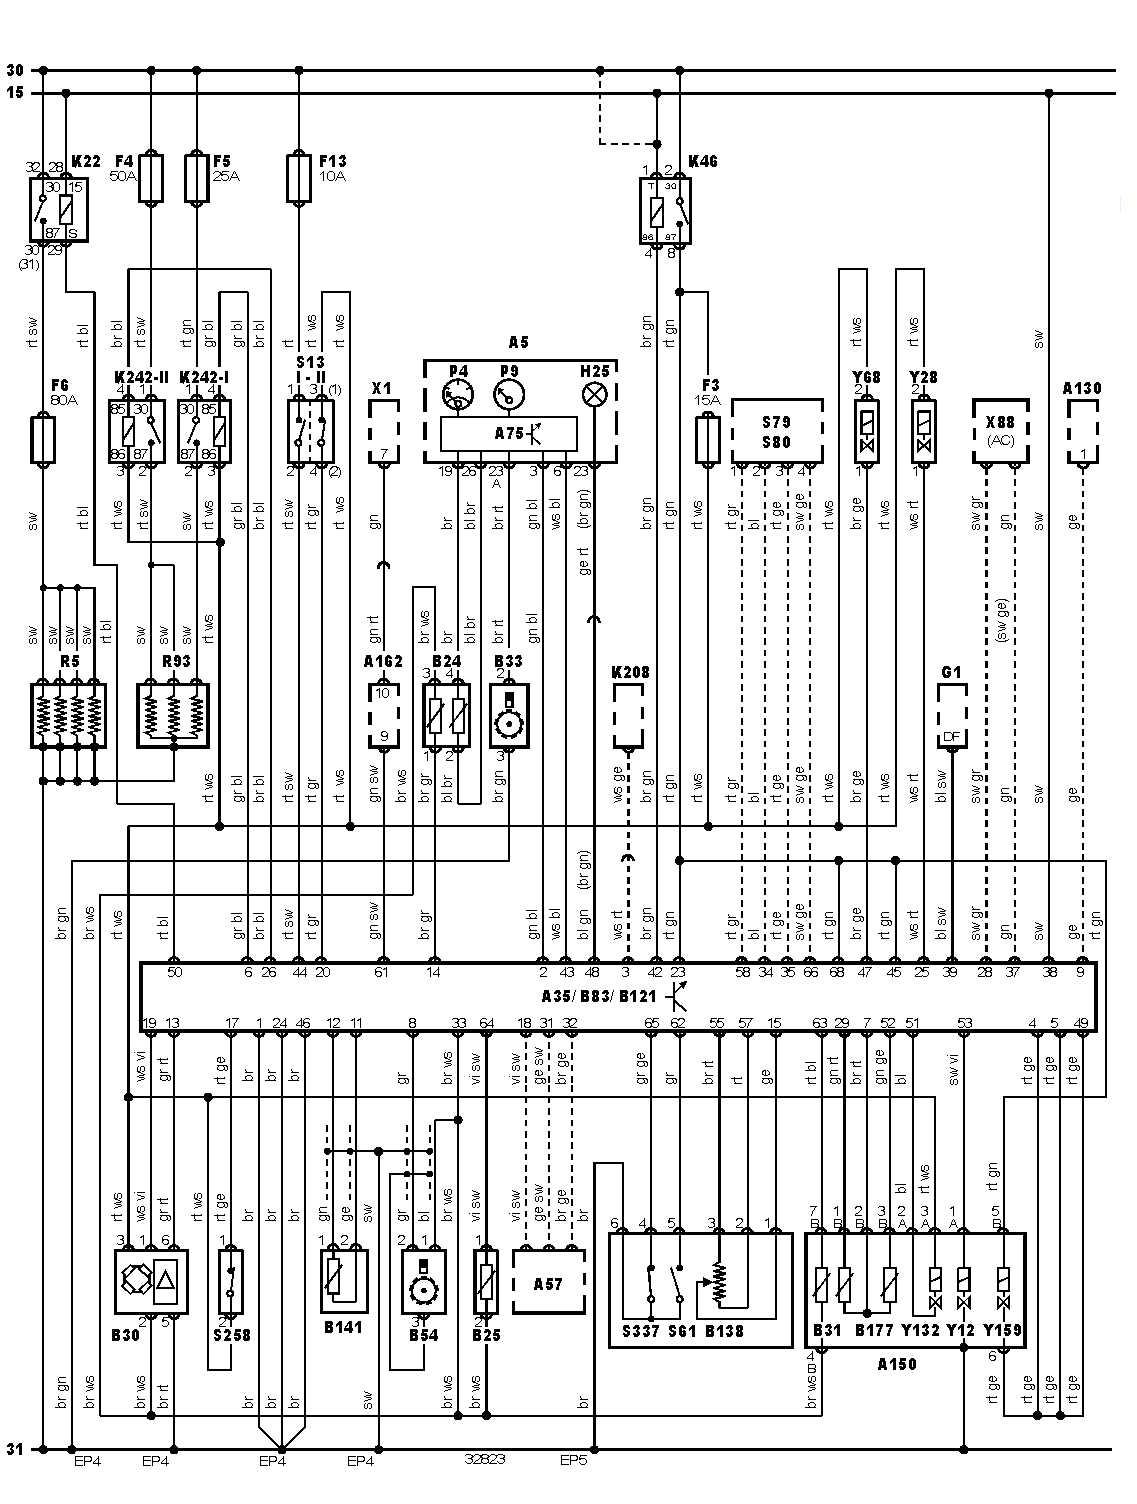 Vw Golf 3 Tdi Wiring Diagram : Vw mk jetta instrument cluster wiring diagram get free